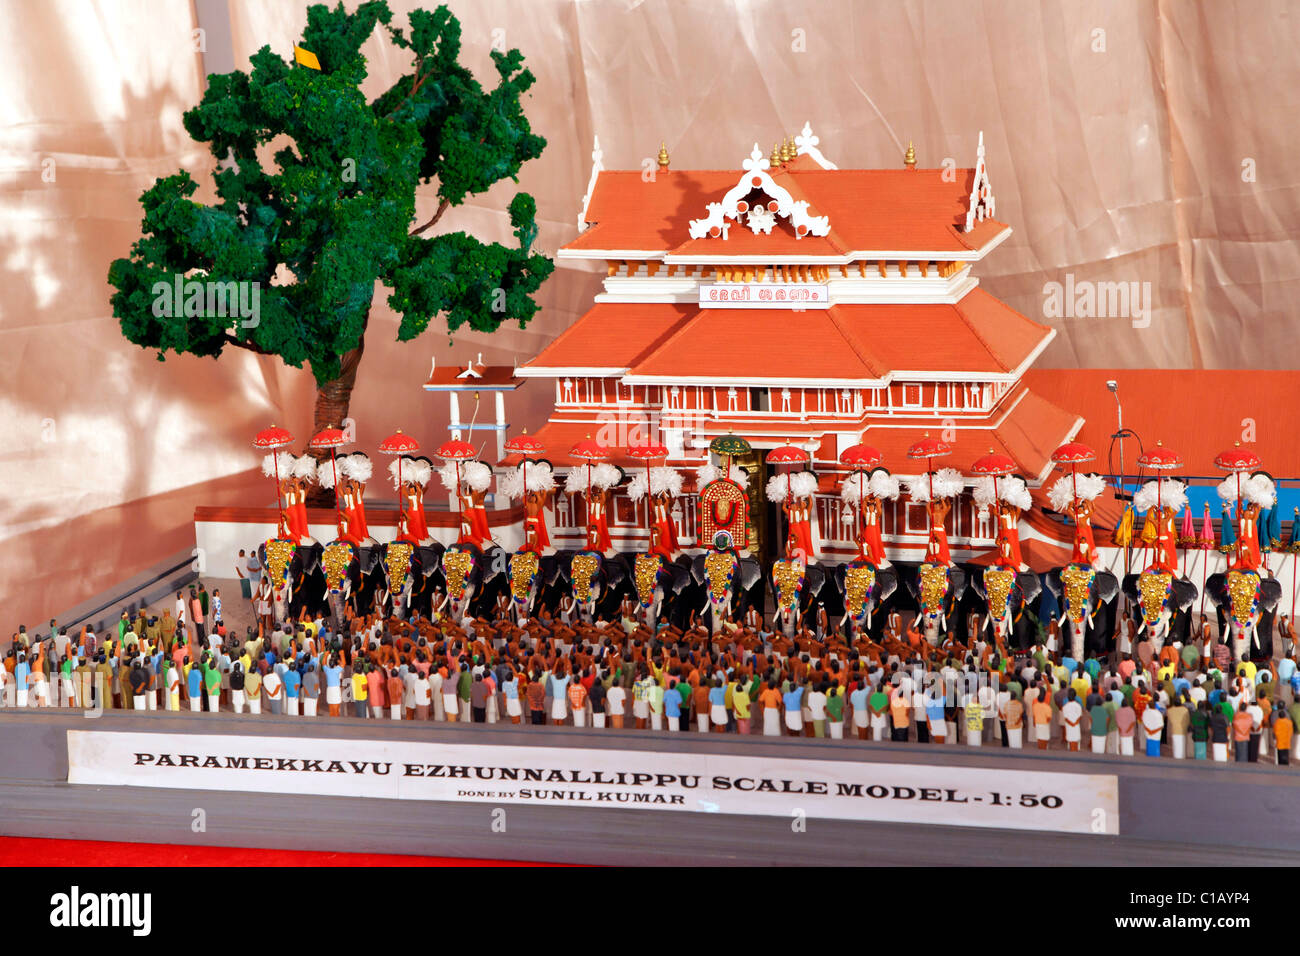 Model in scale of the Vadakkunnathan Temple, The Thrissur Pooram festival, Thrissur, Kerala, India, Asia - Stock Image